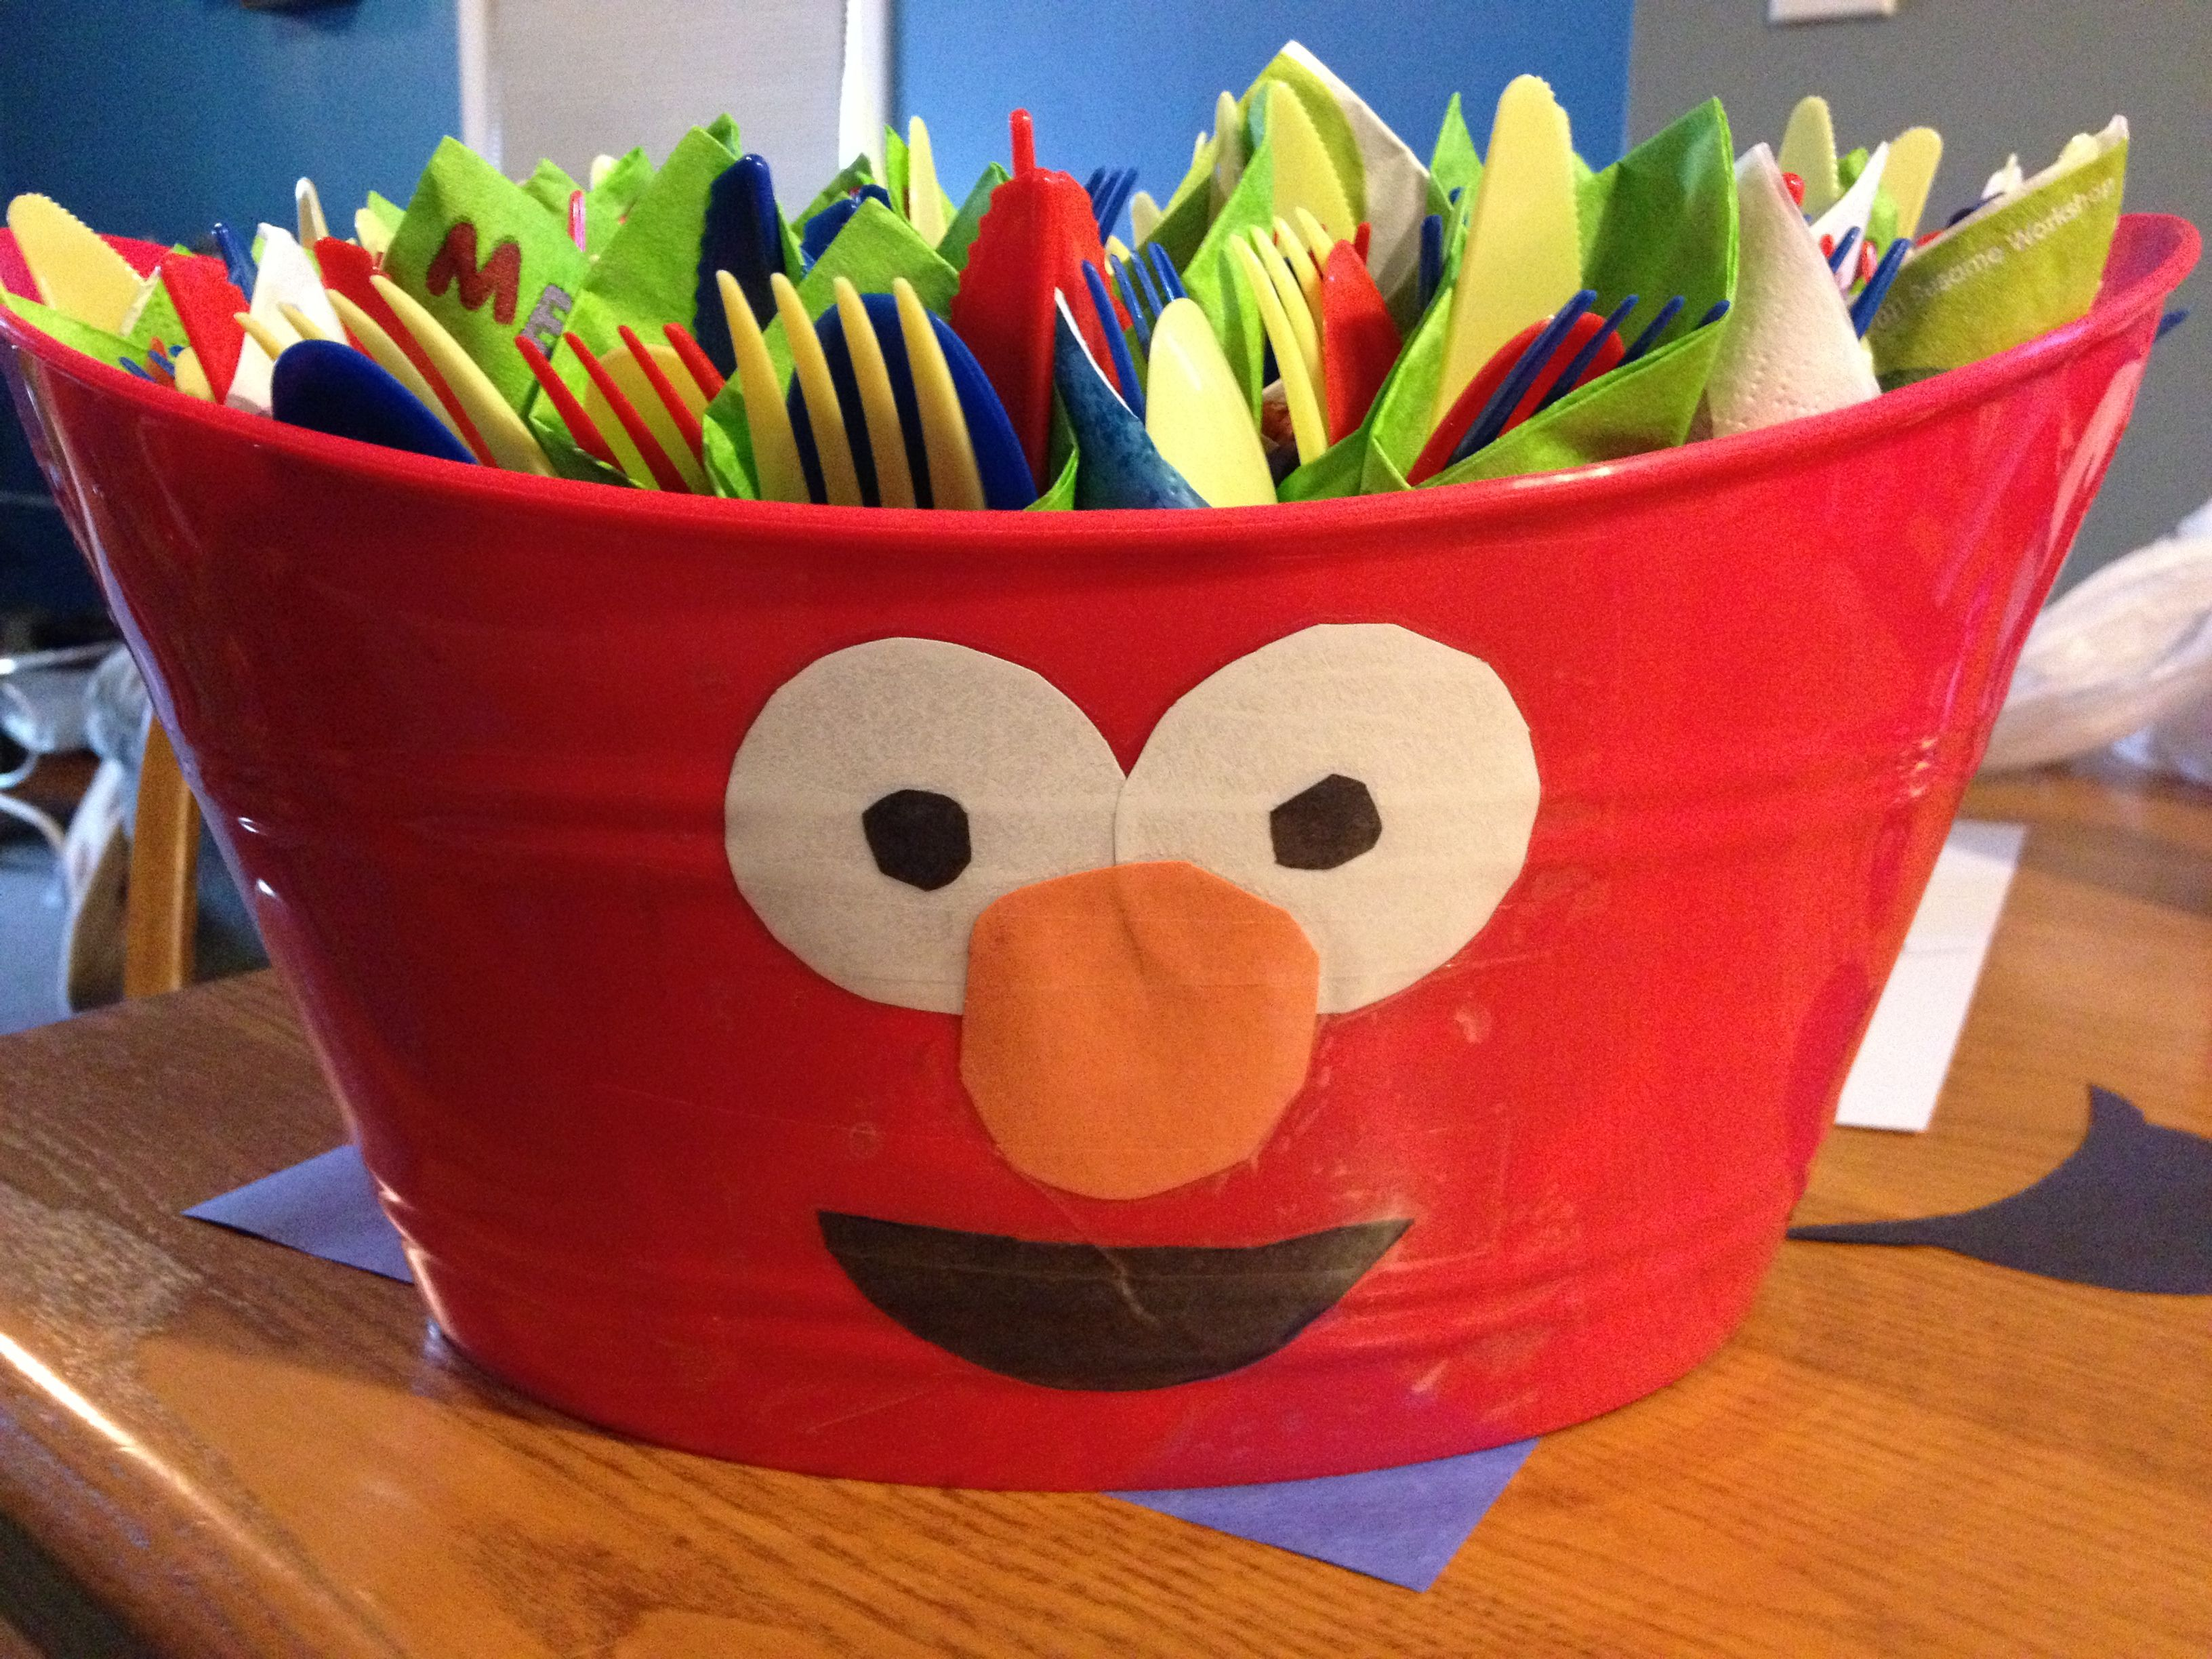 Elmo 1st birthday party ideas birthday party sesamestreet - Birthday Party Ideas Diy Elmo Bowls From The Dollar Tree For Sesame Street Birthday